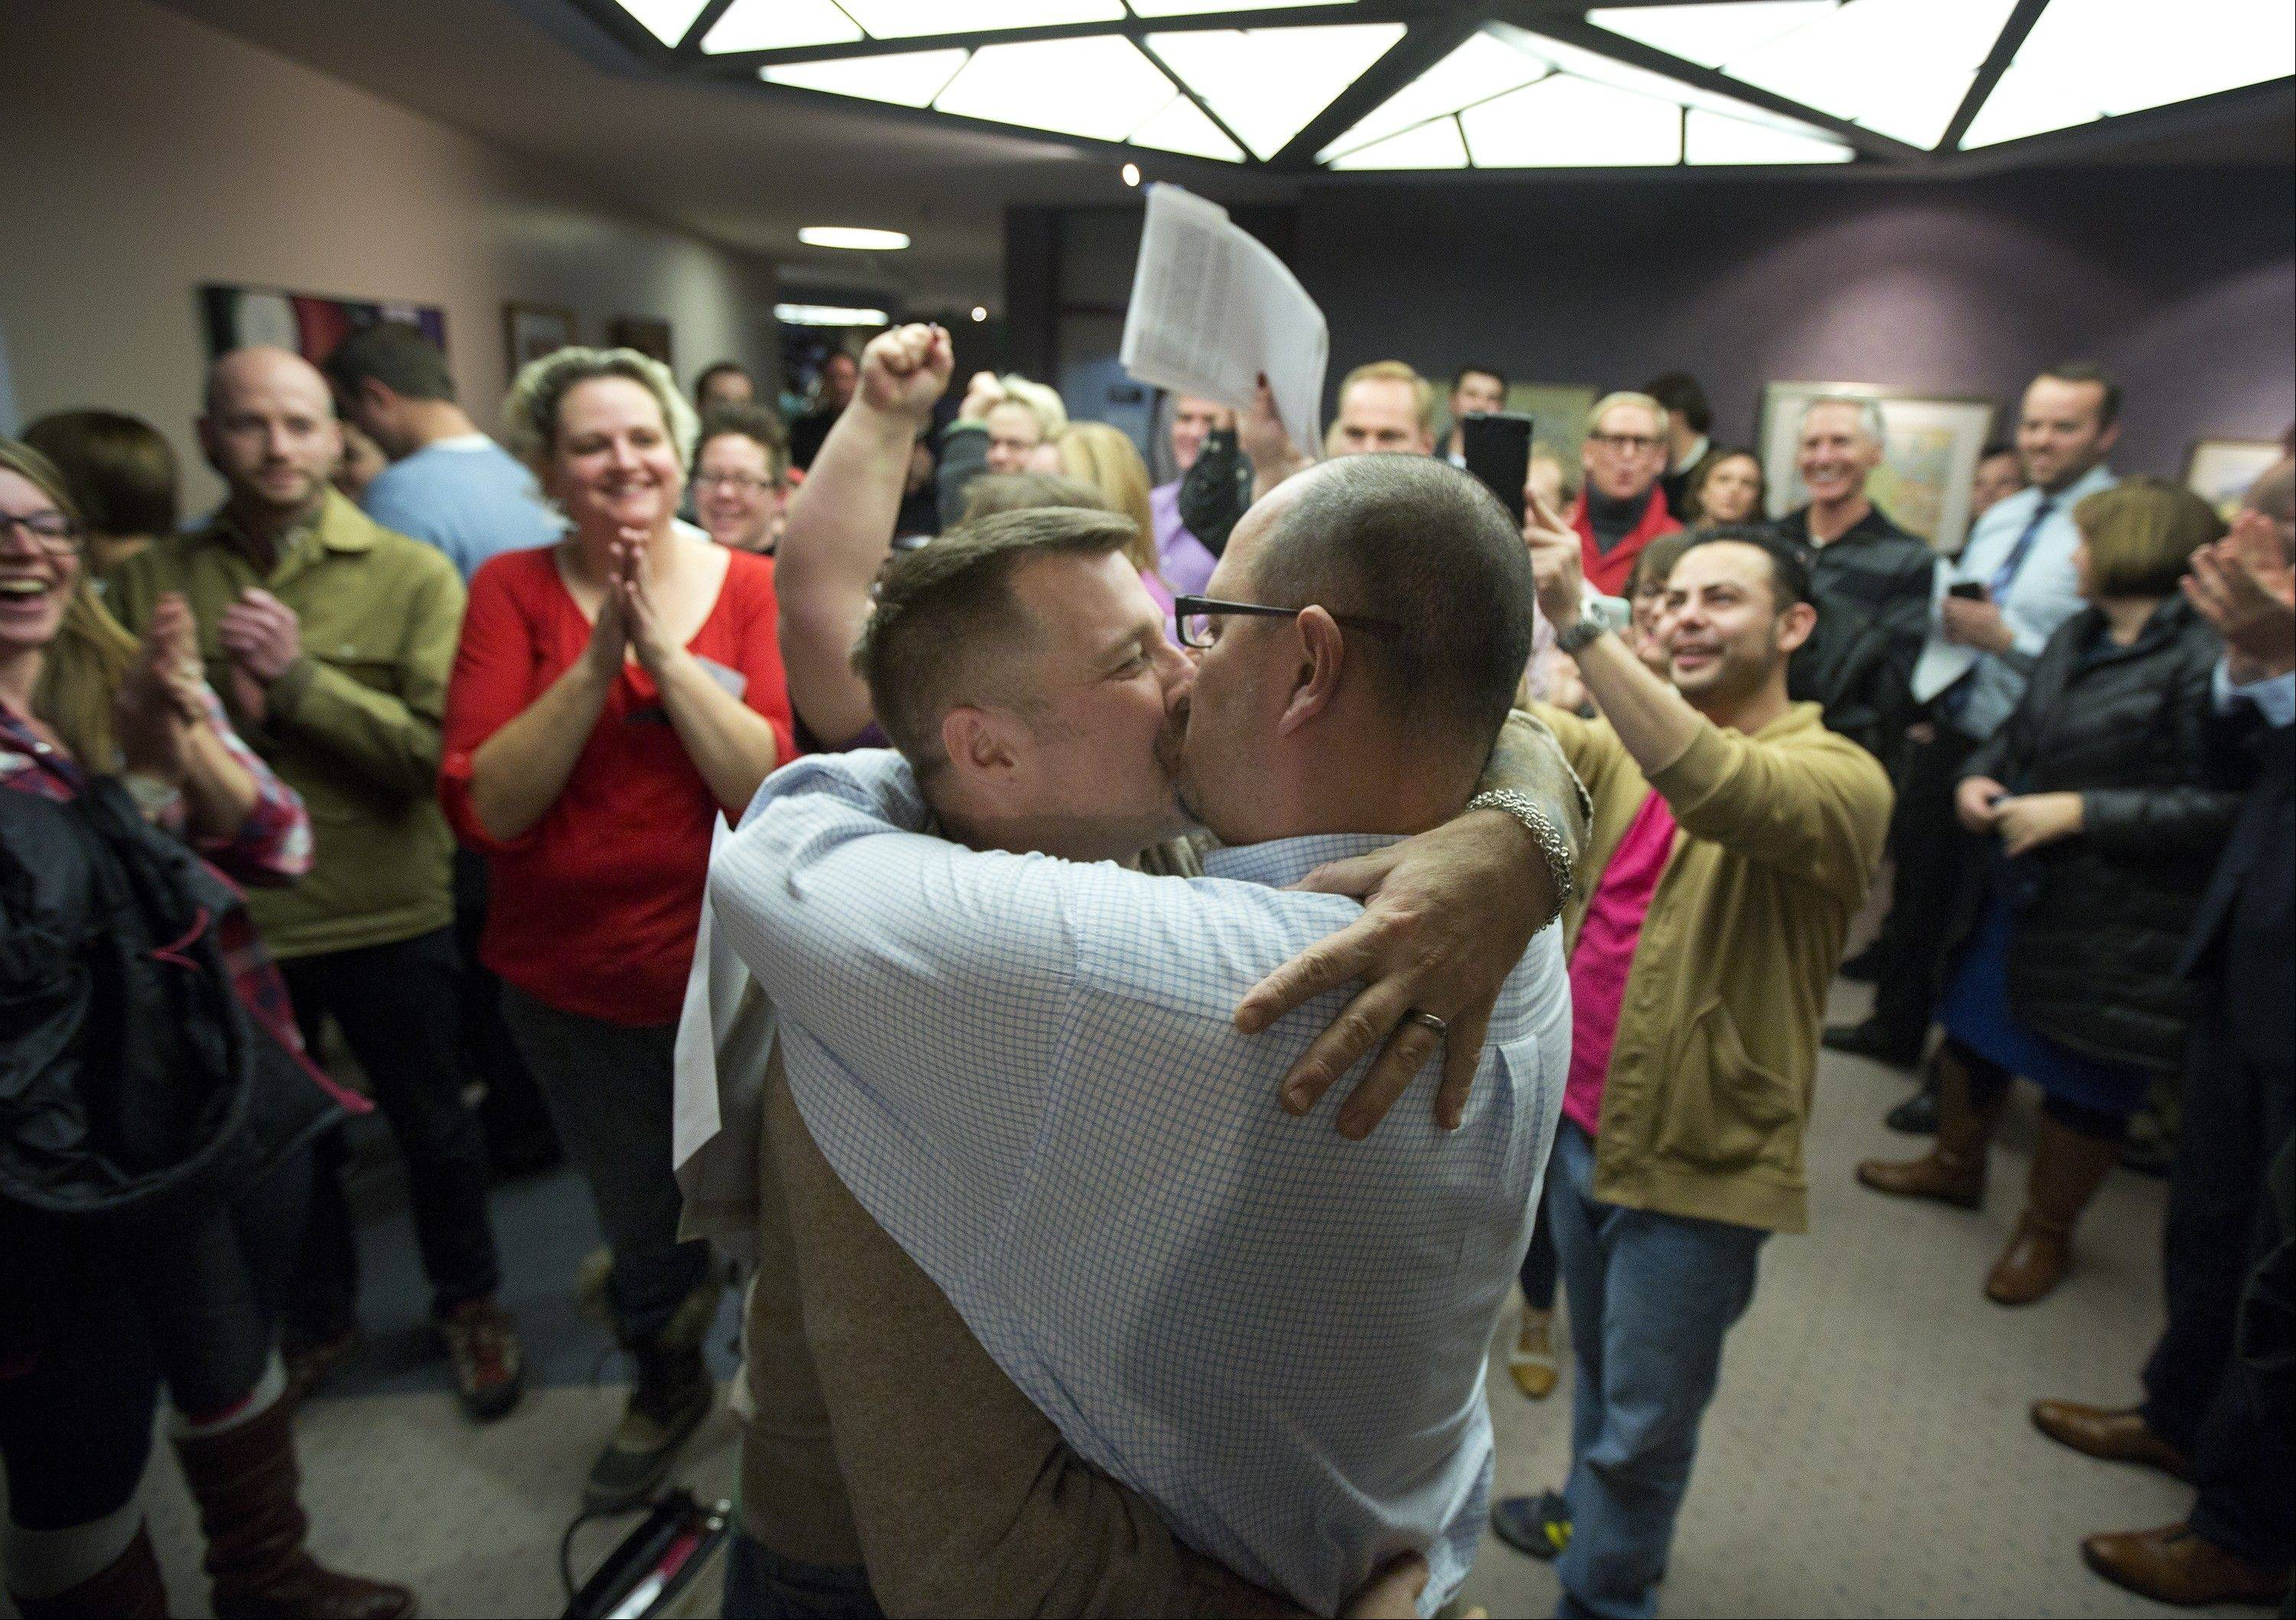 Chris Serrano, left, and Clifton Webb kiss after being married, as people wait in line to get licenses outside of the marriage division of the Salt Lake County Clerk�s Office in Salt Lake City, last Friday.